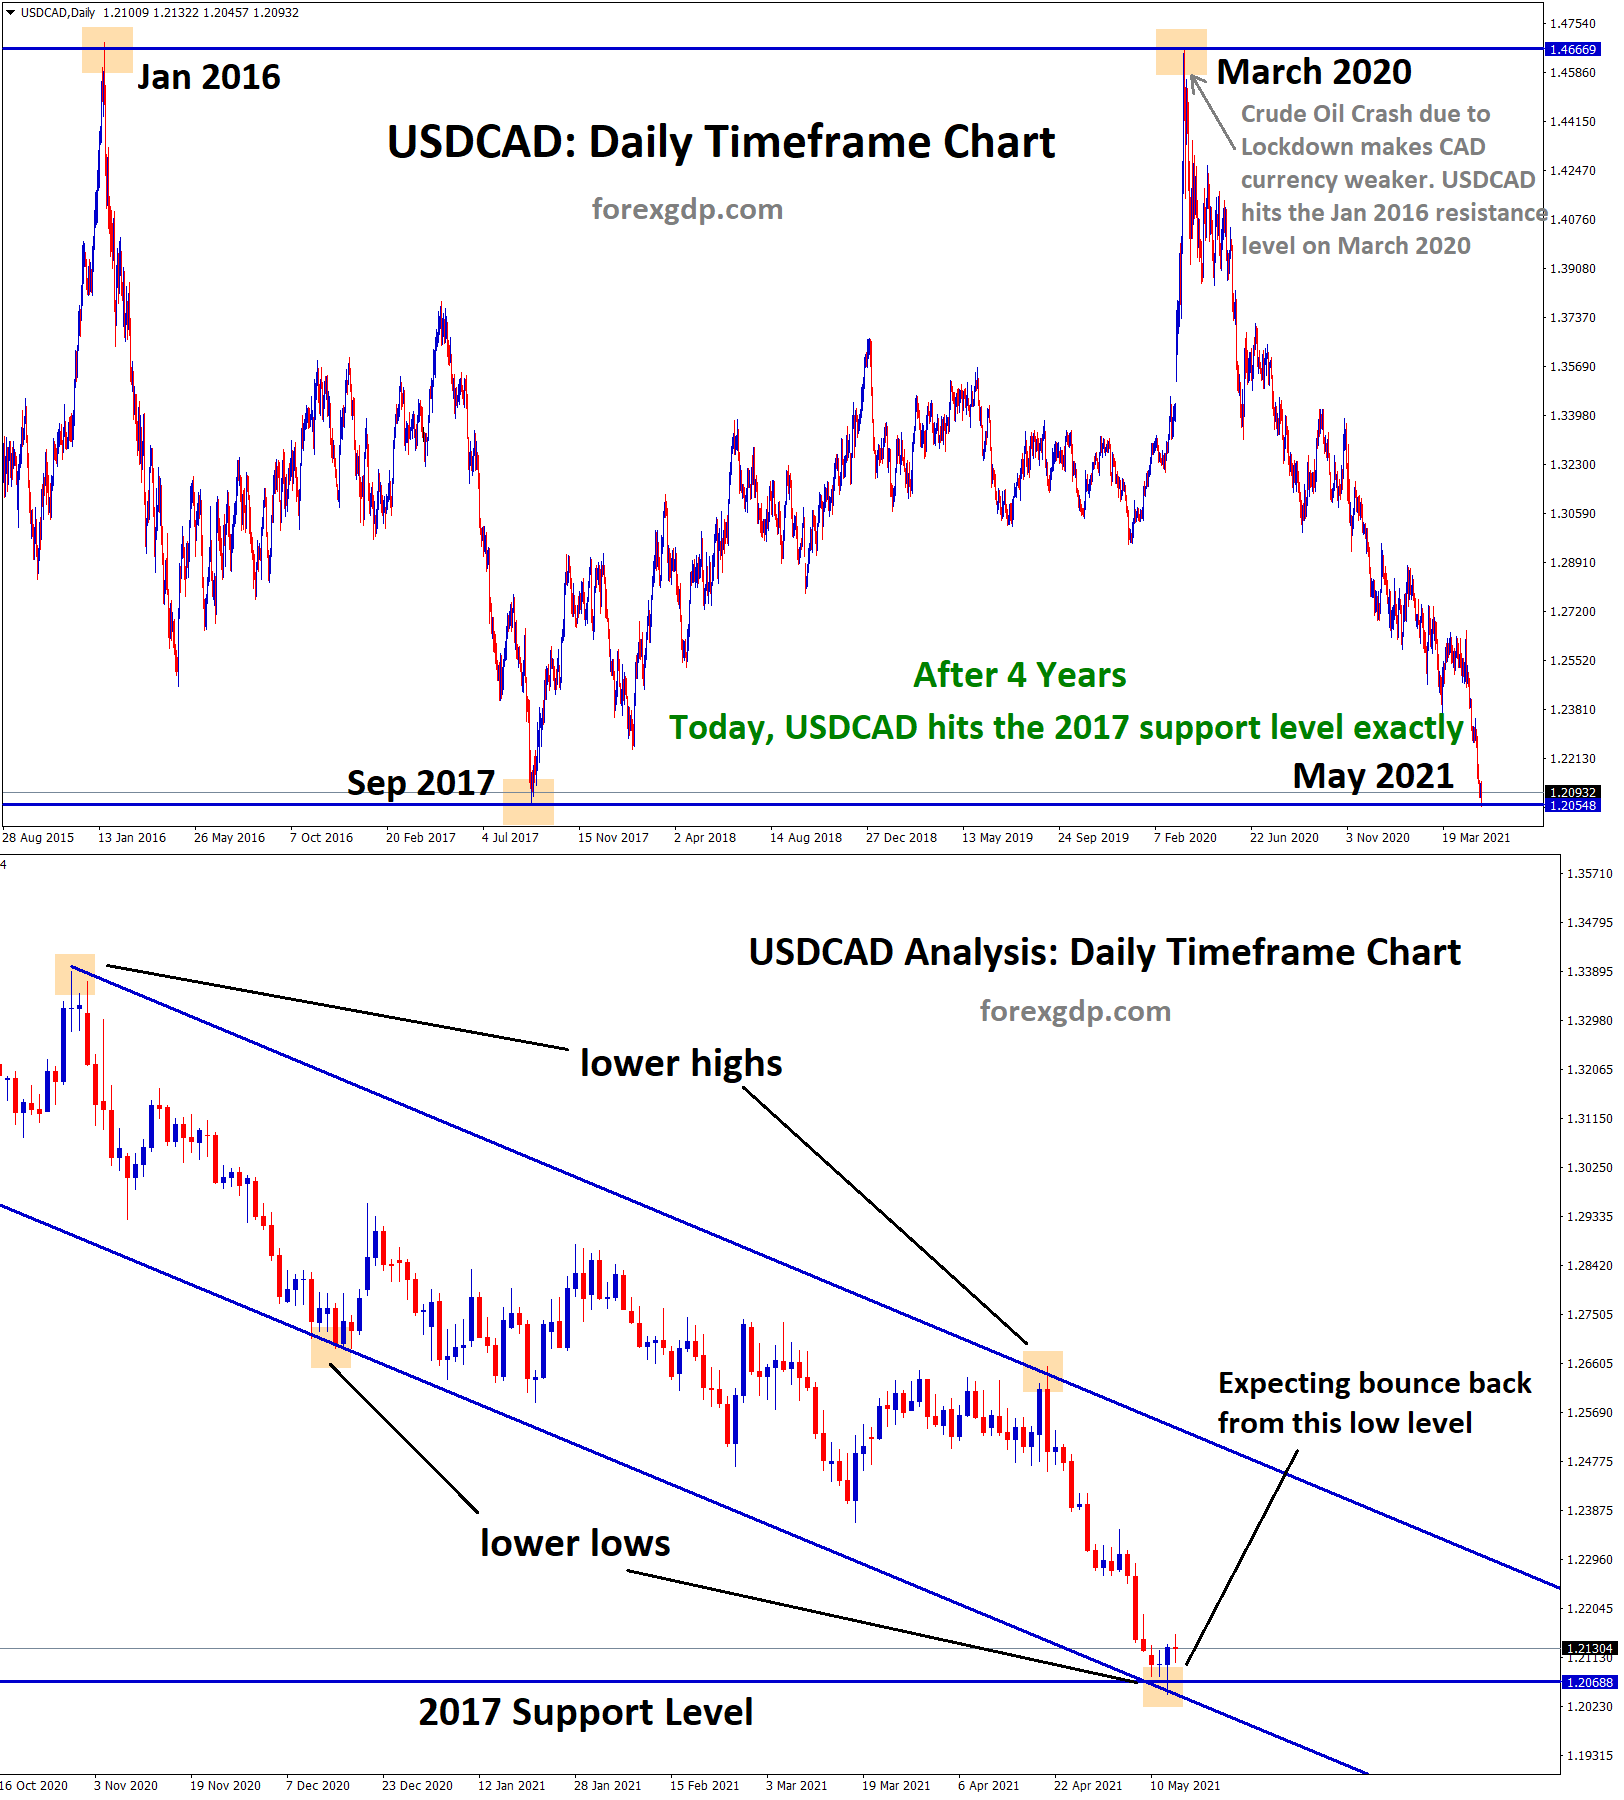 USDCAD hits the 2017 support level exactly and bounce back from lower low of downtrend line